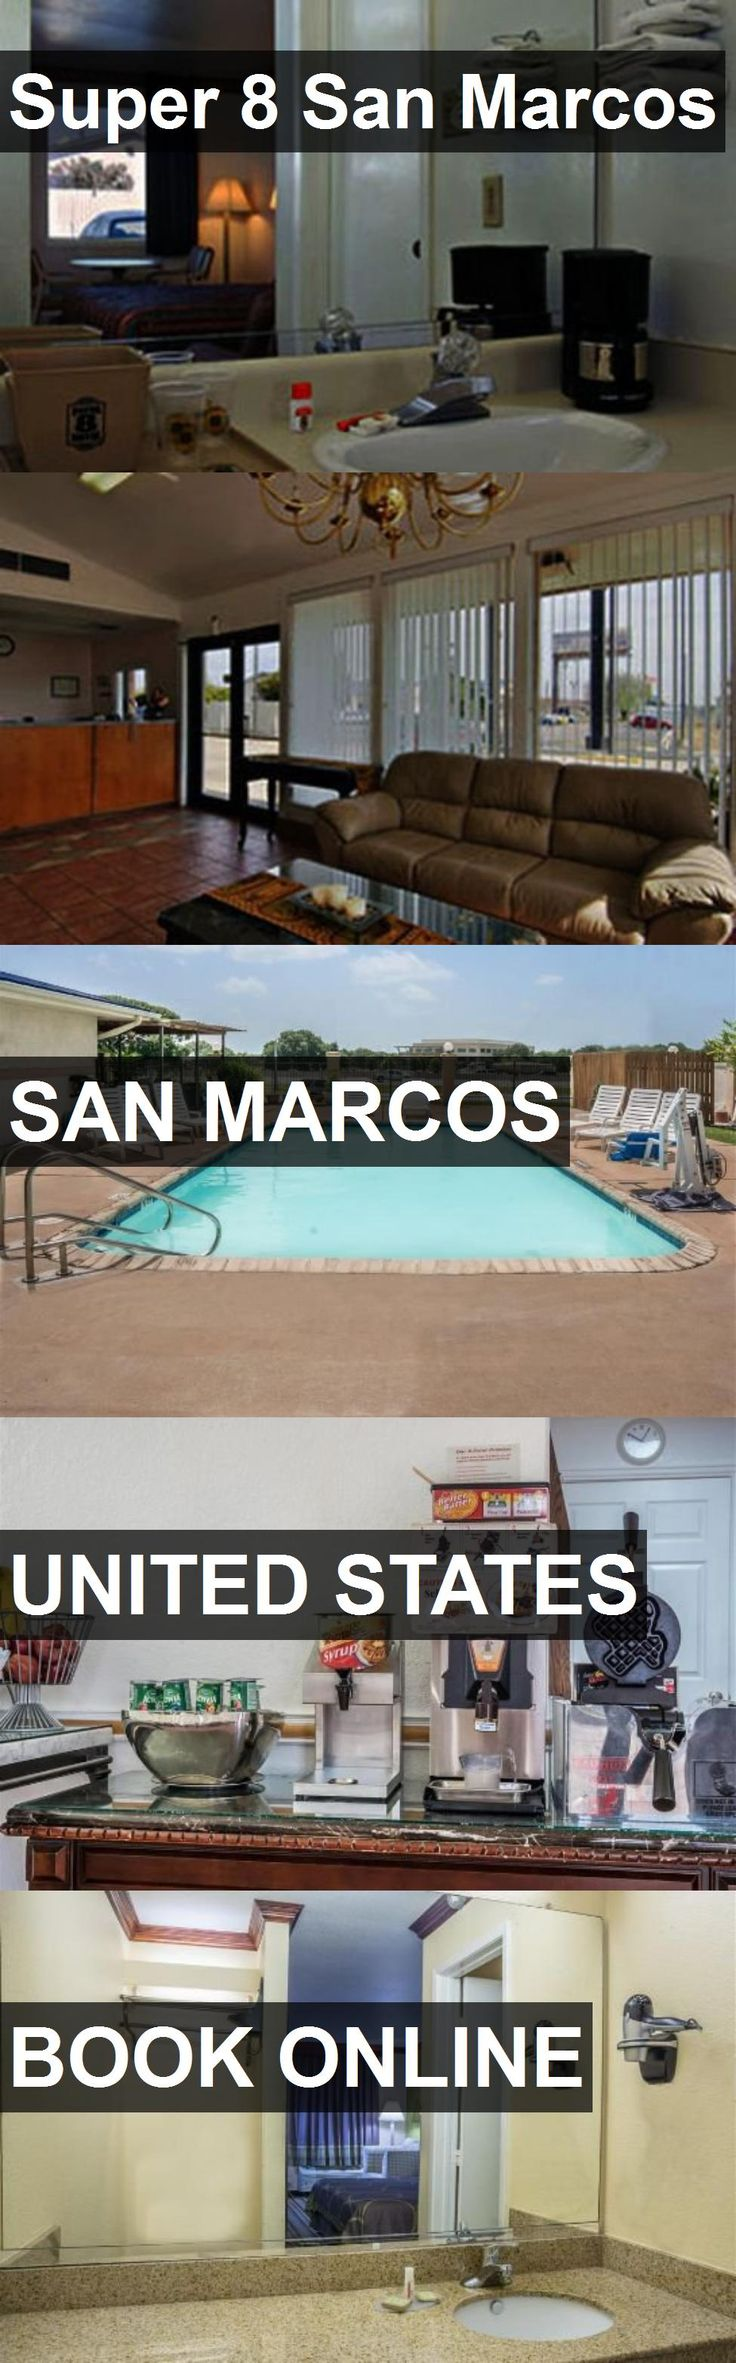 Hotel Super 8 San Marcos in San Marcos, United States. For more information, photos, reviews and best prices please follow the link. #UnitedStates #SanMarcos #travel #vacation #hotel